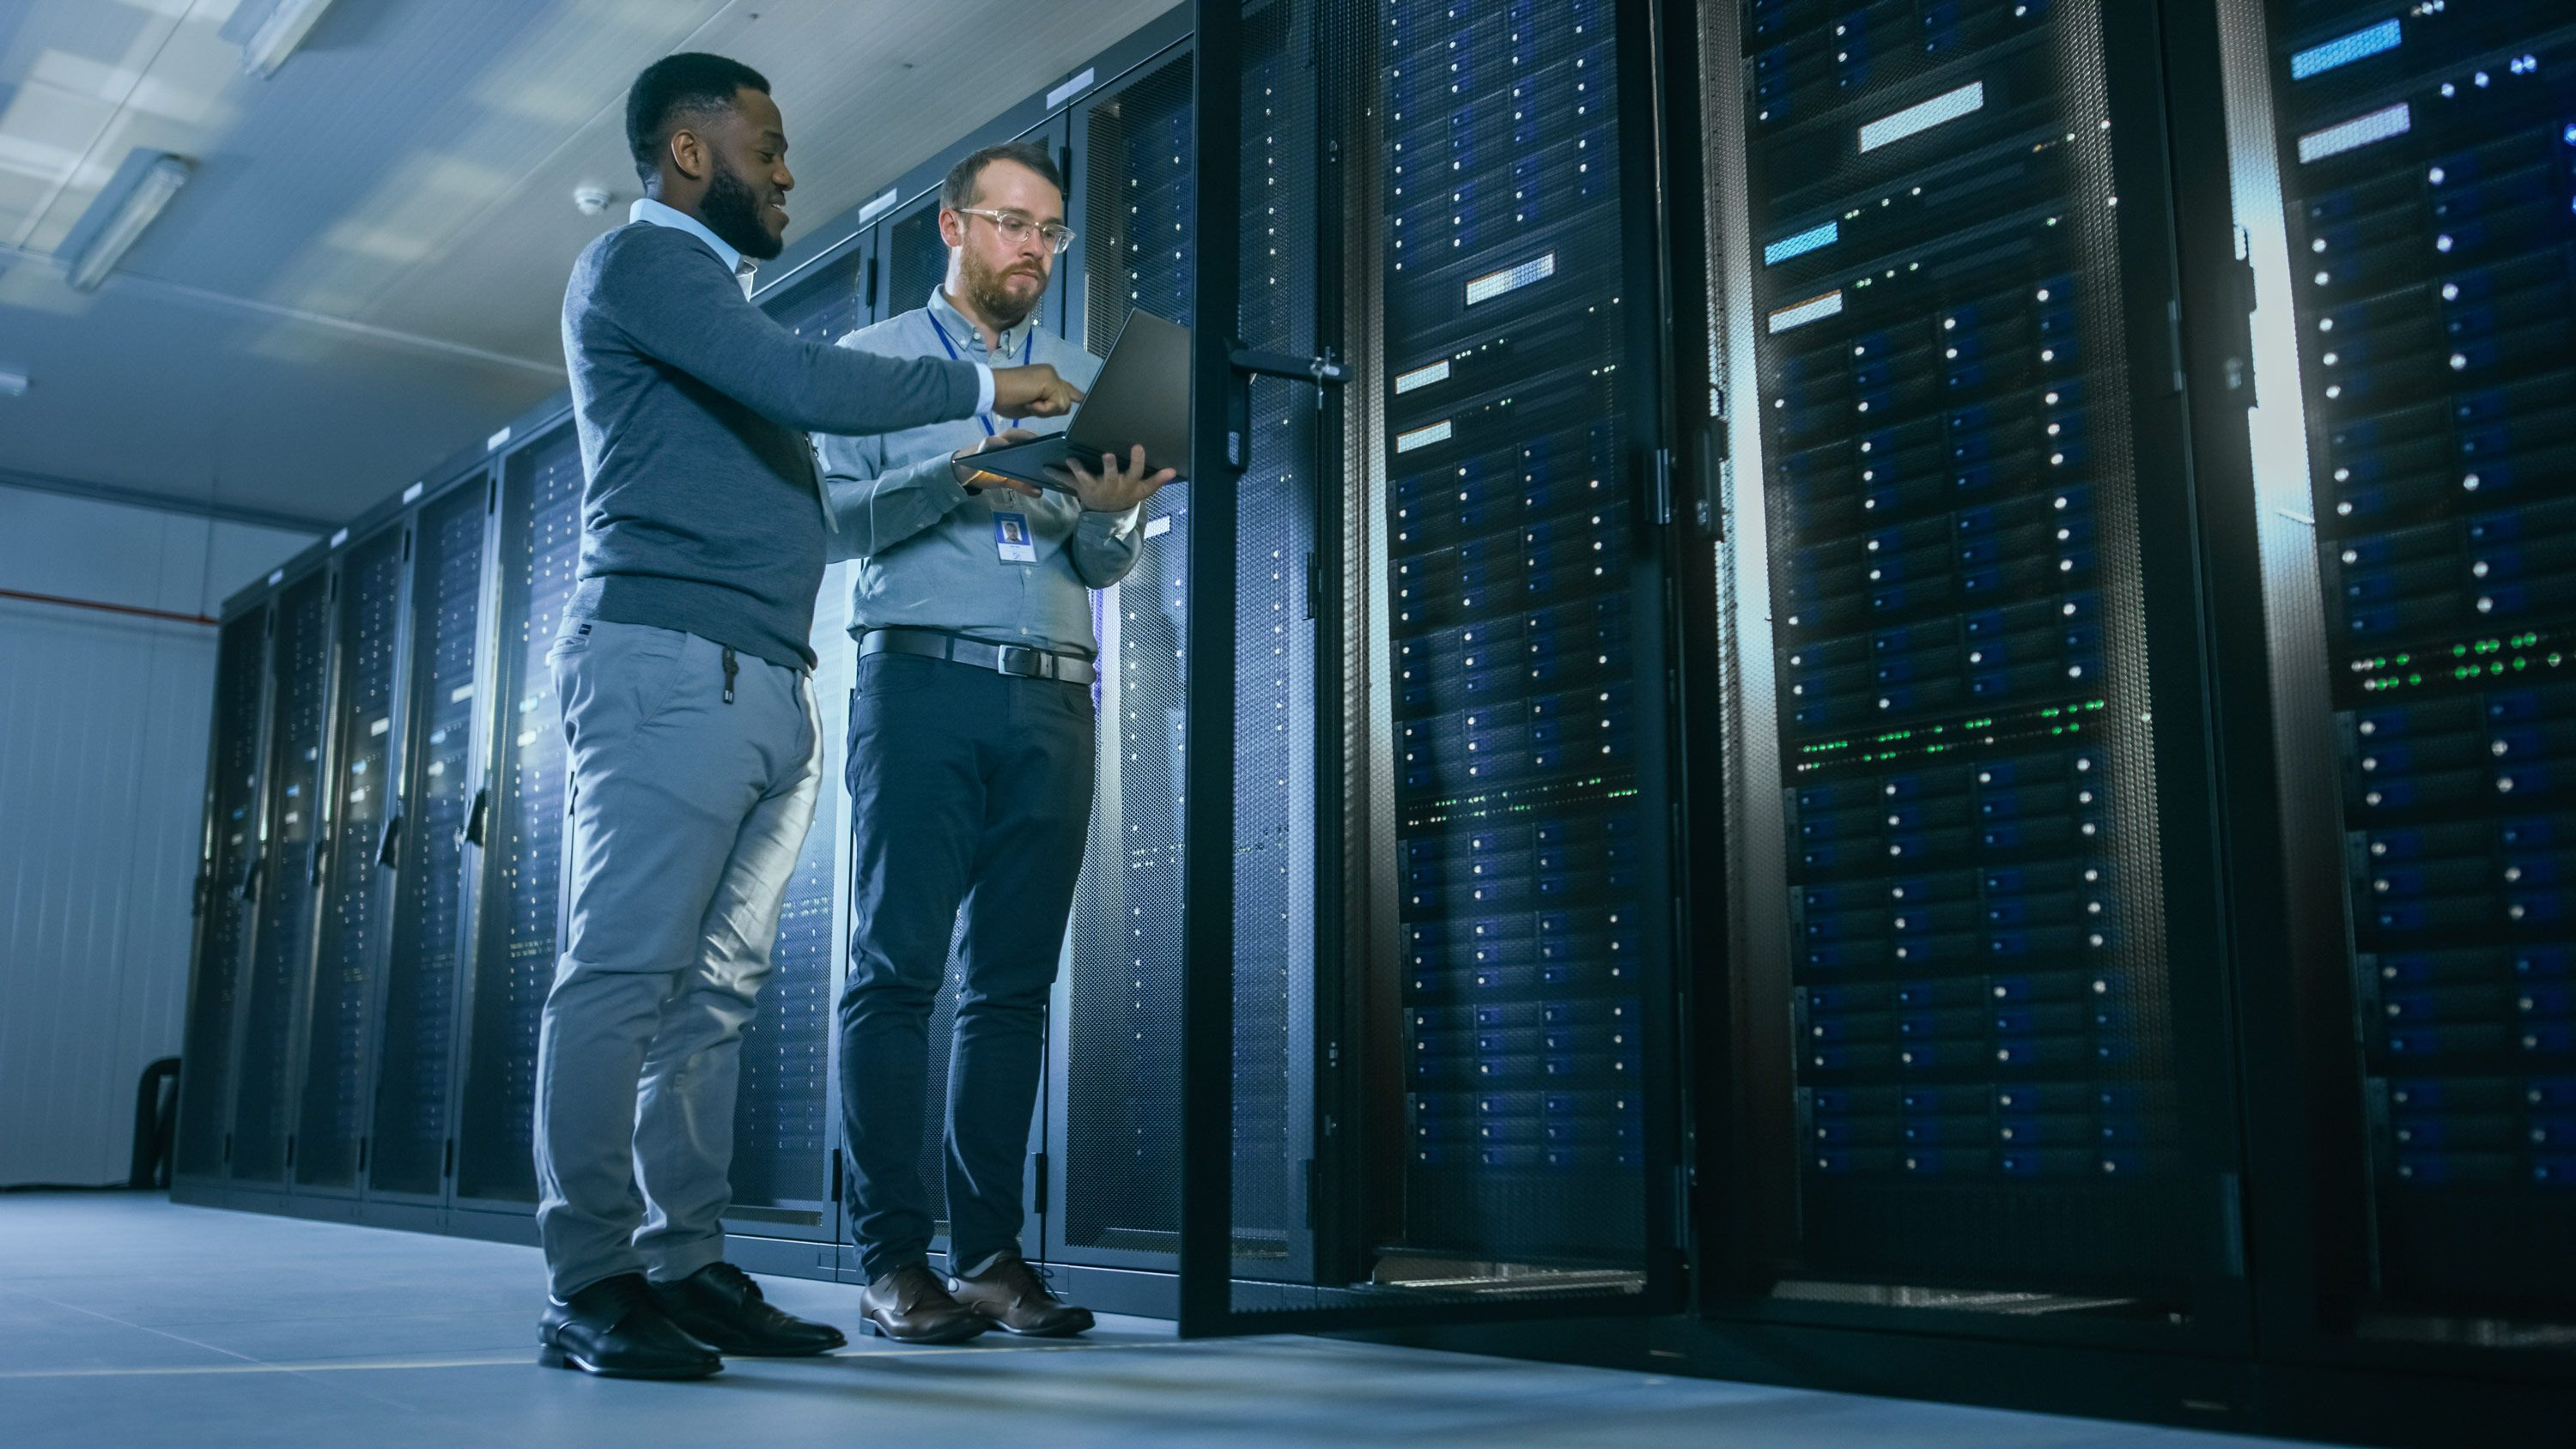 Two diverse engineers standing in front of a row of servers looking at a computer.